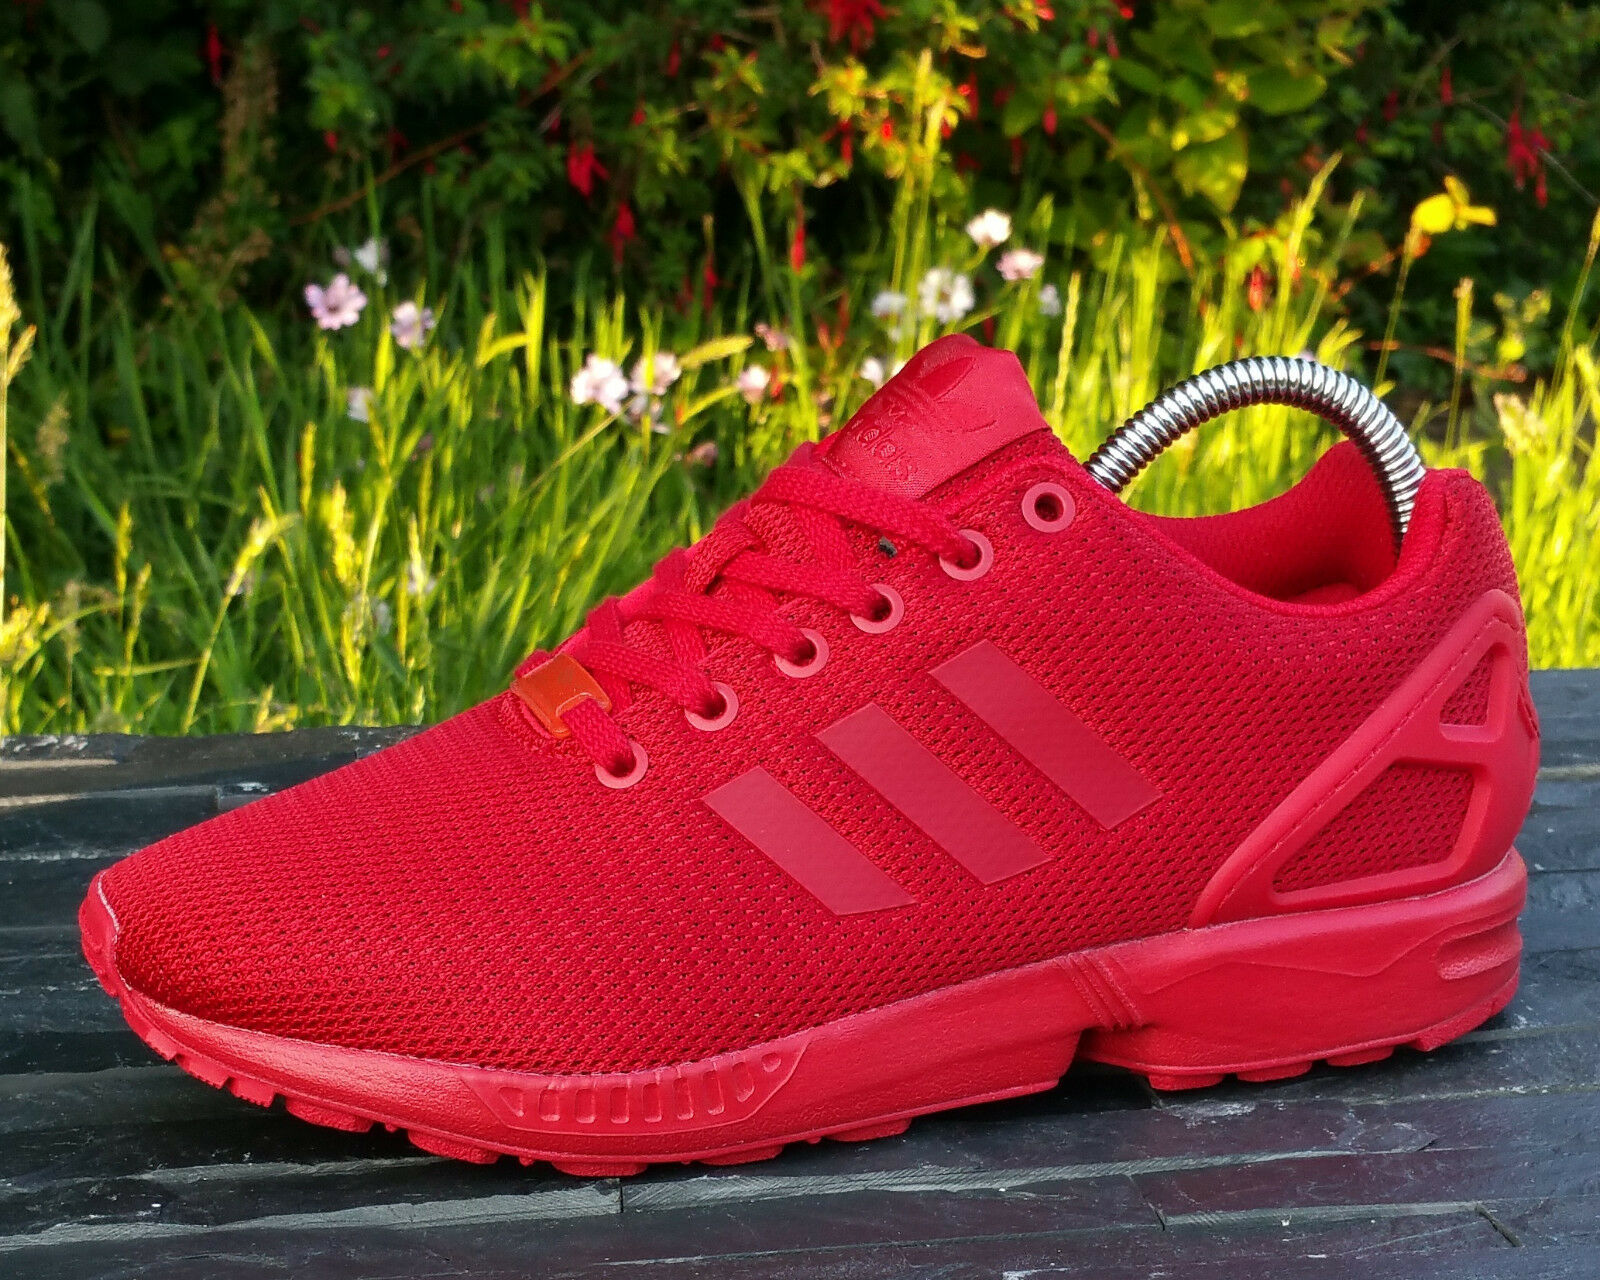 56d41d825 ... canada bnwb genuino adidas originals zx flux triple zapatillas rojo  torsión zapatillas triple tamaño 7.5 2a0c72